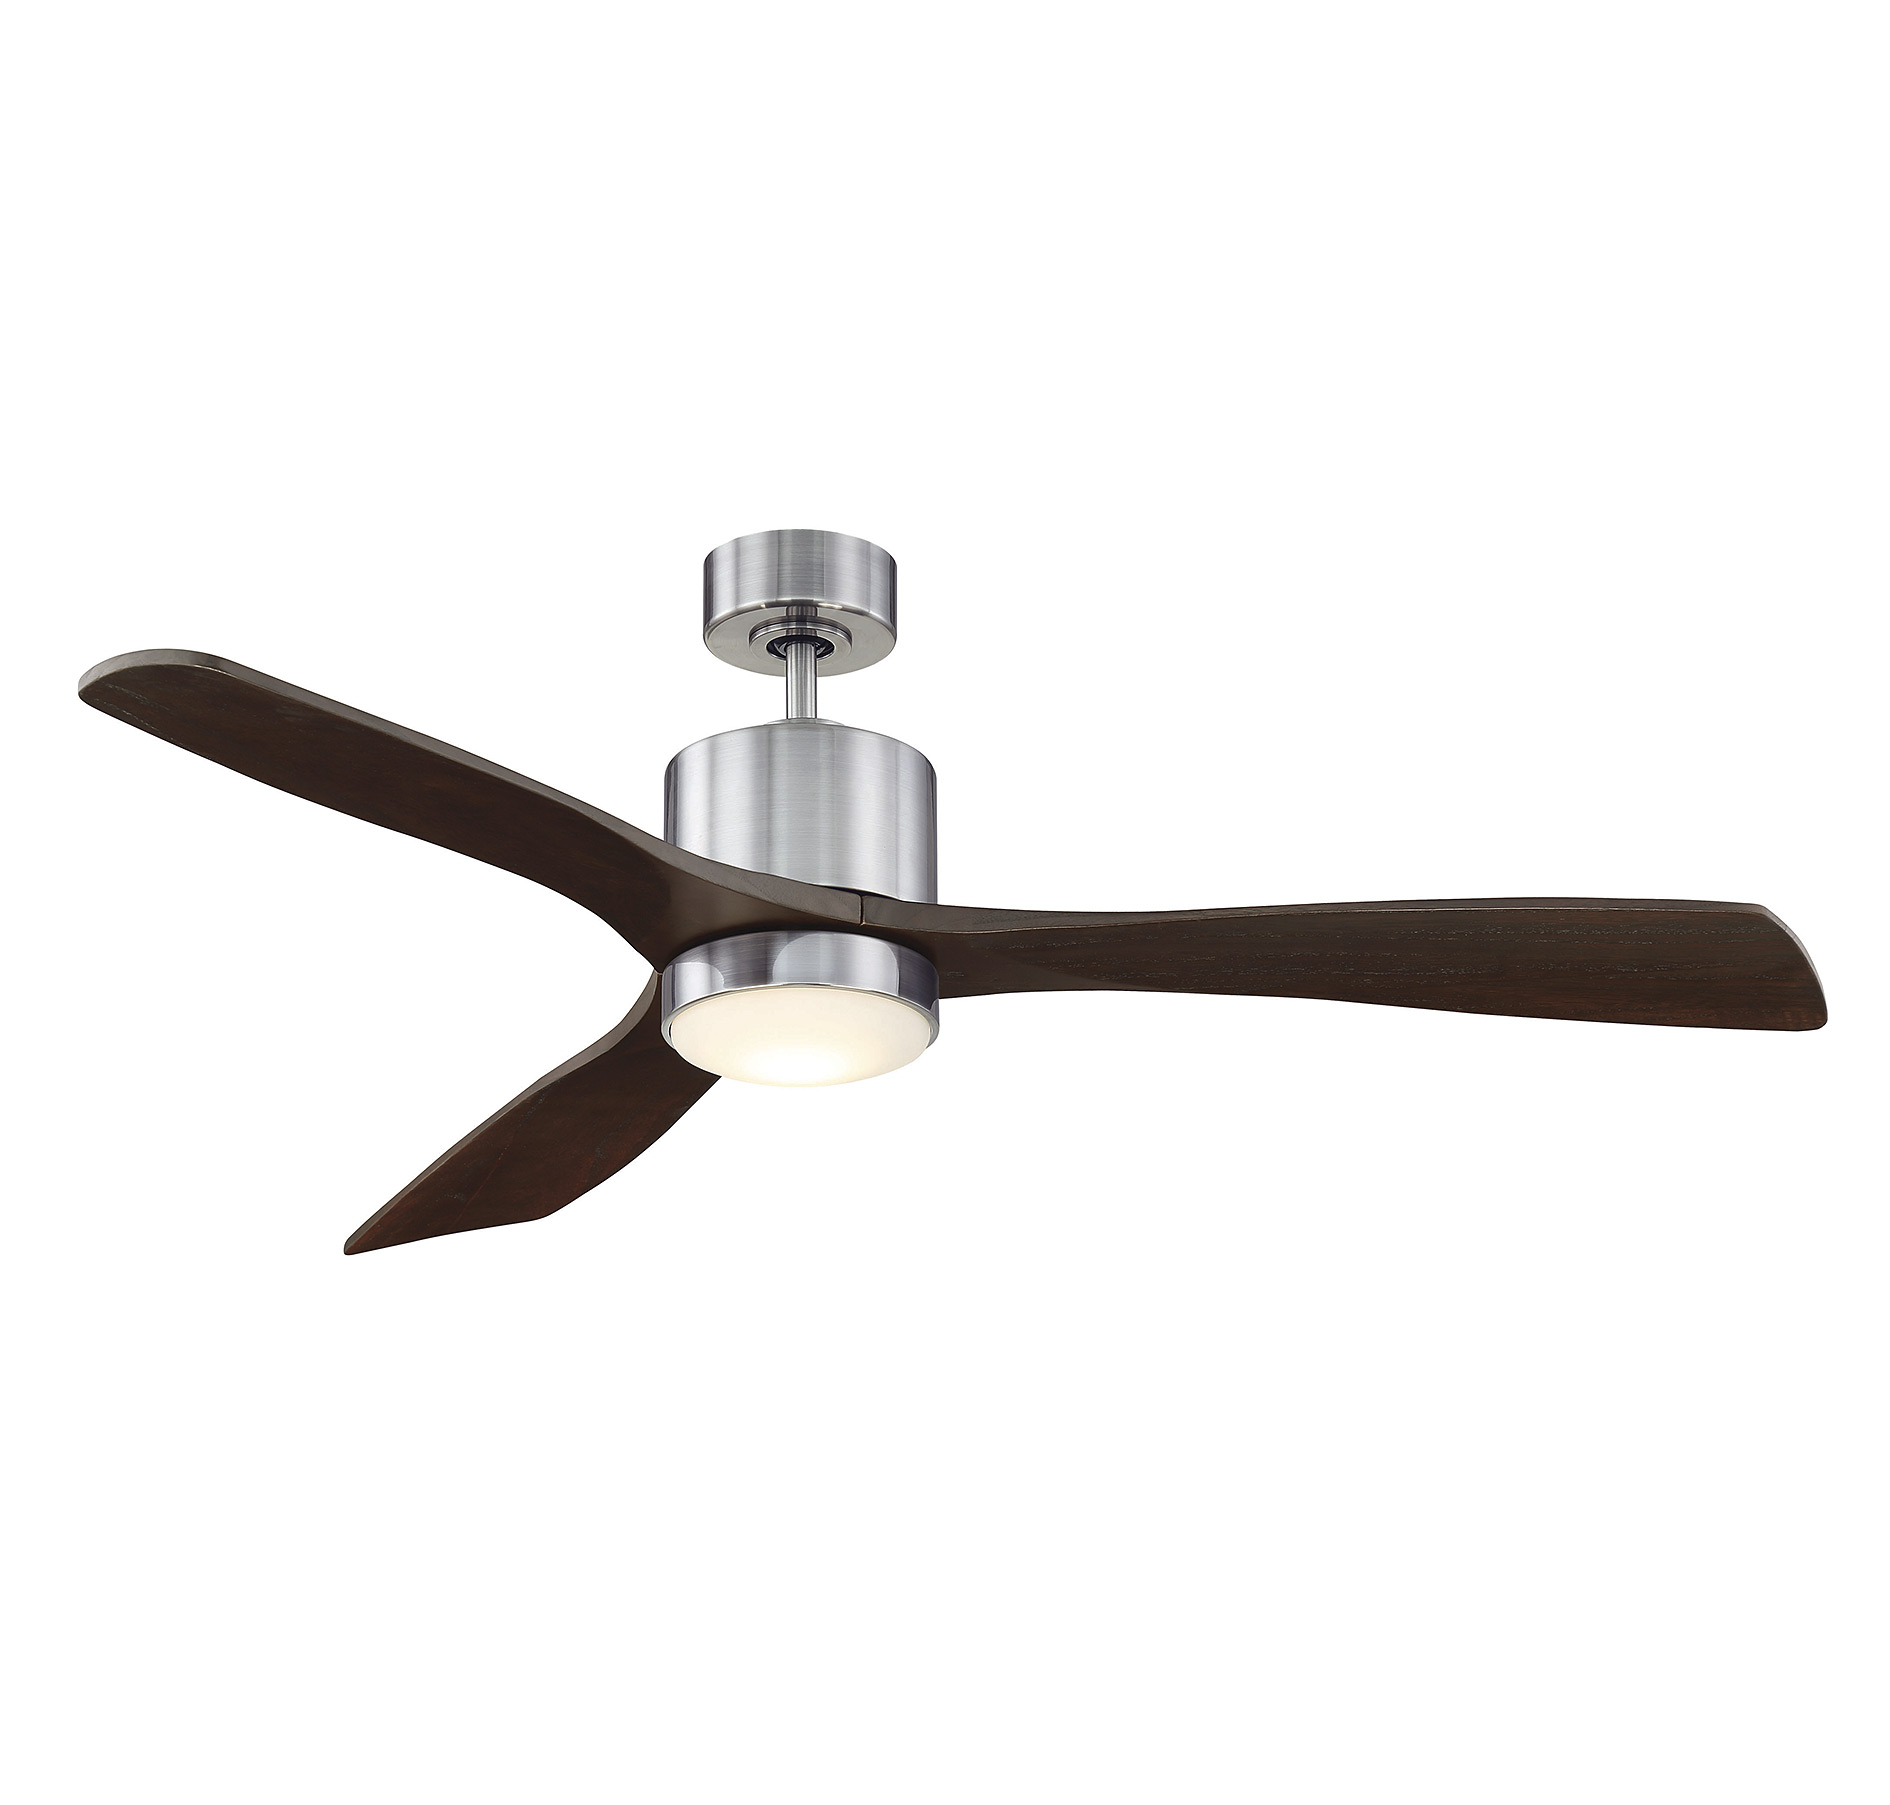 Ceiling Fan with Light by Savoy House